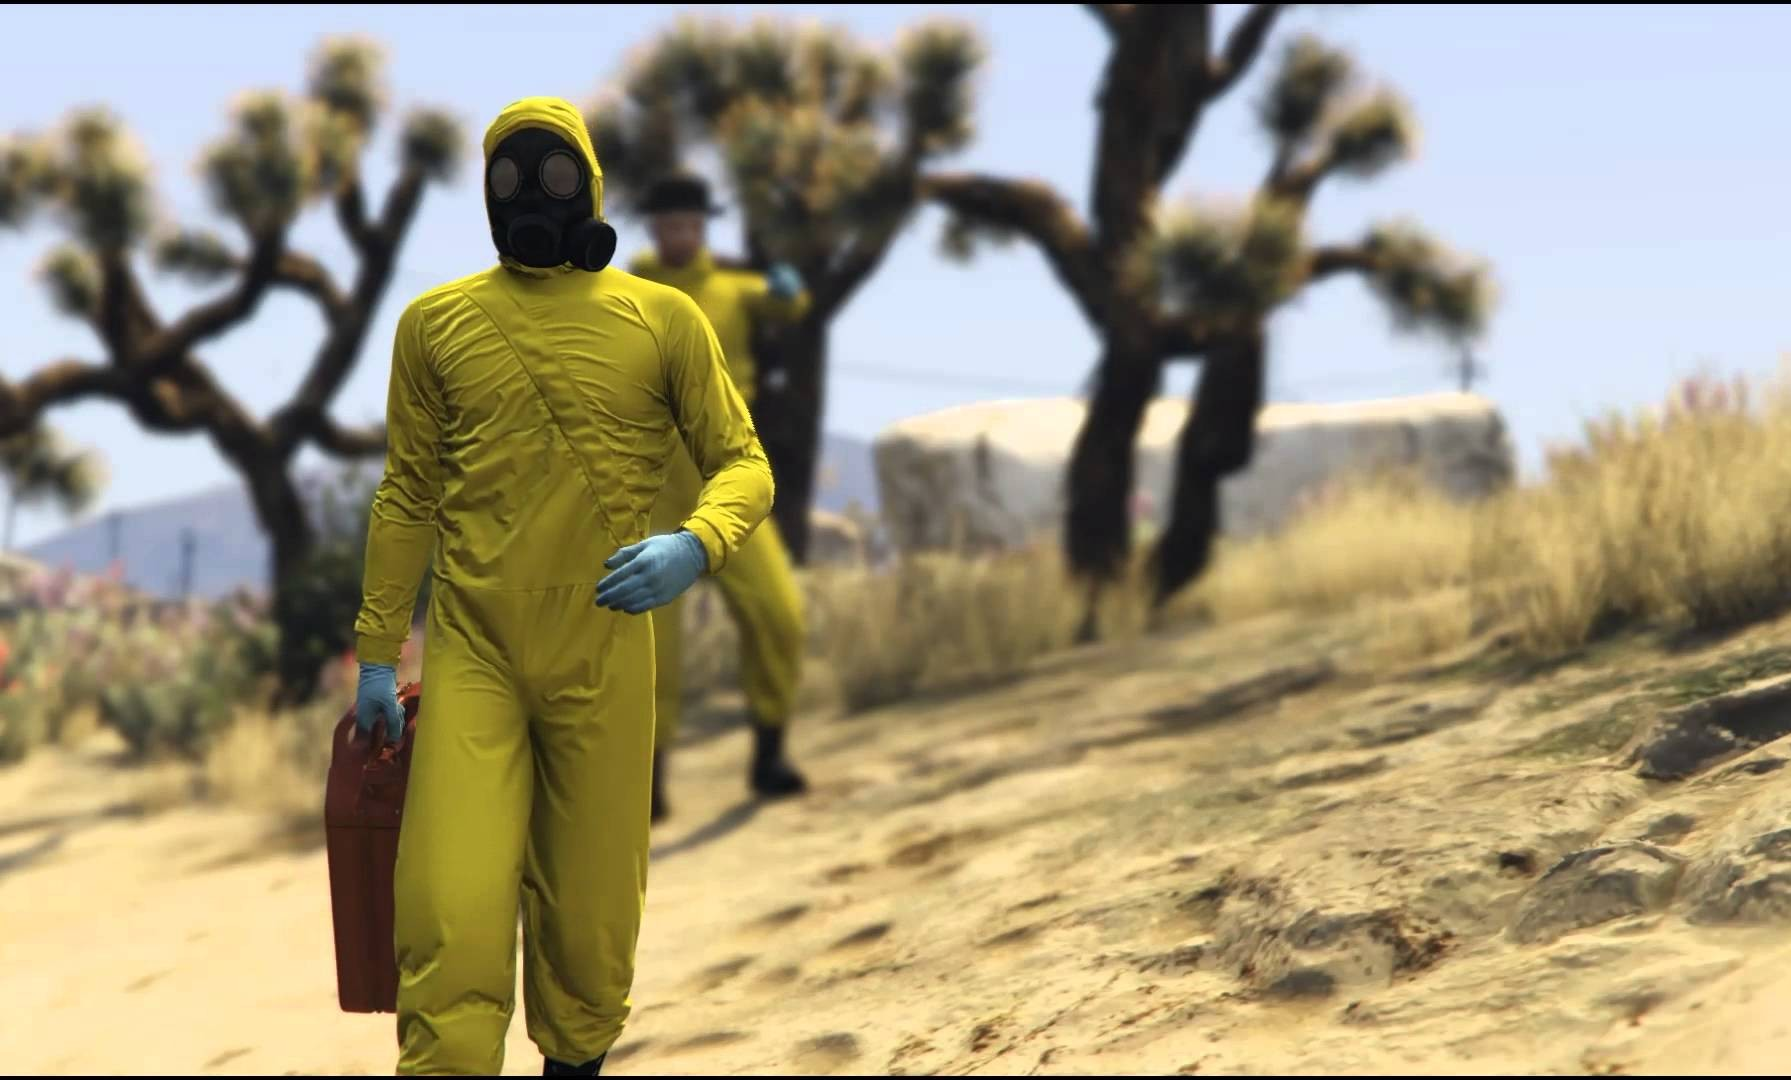 BONITO TRIBUTO A BREAKING BAD EN GTA V